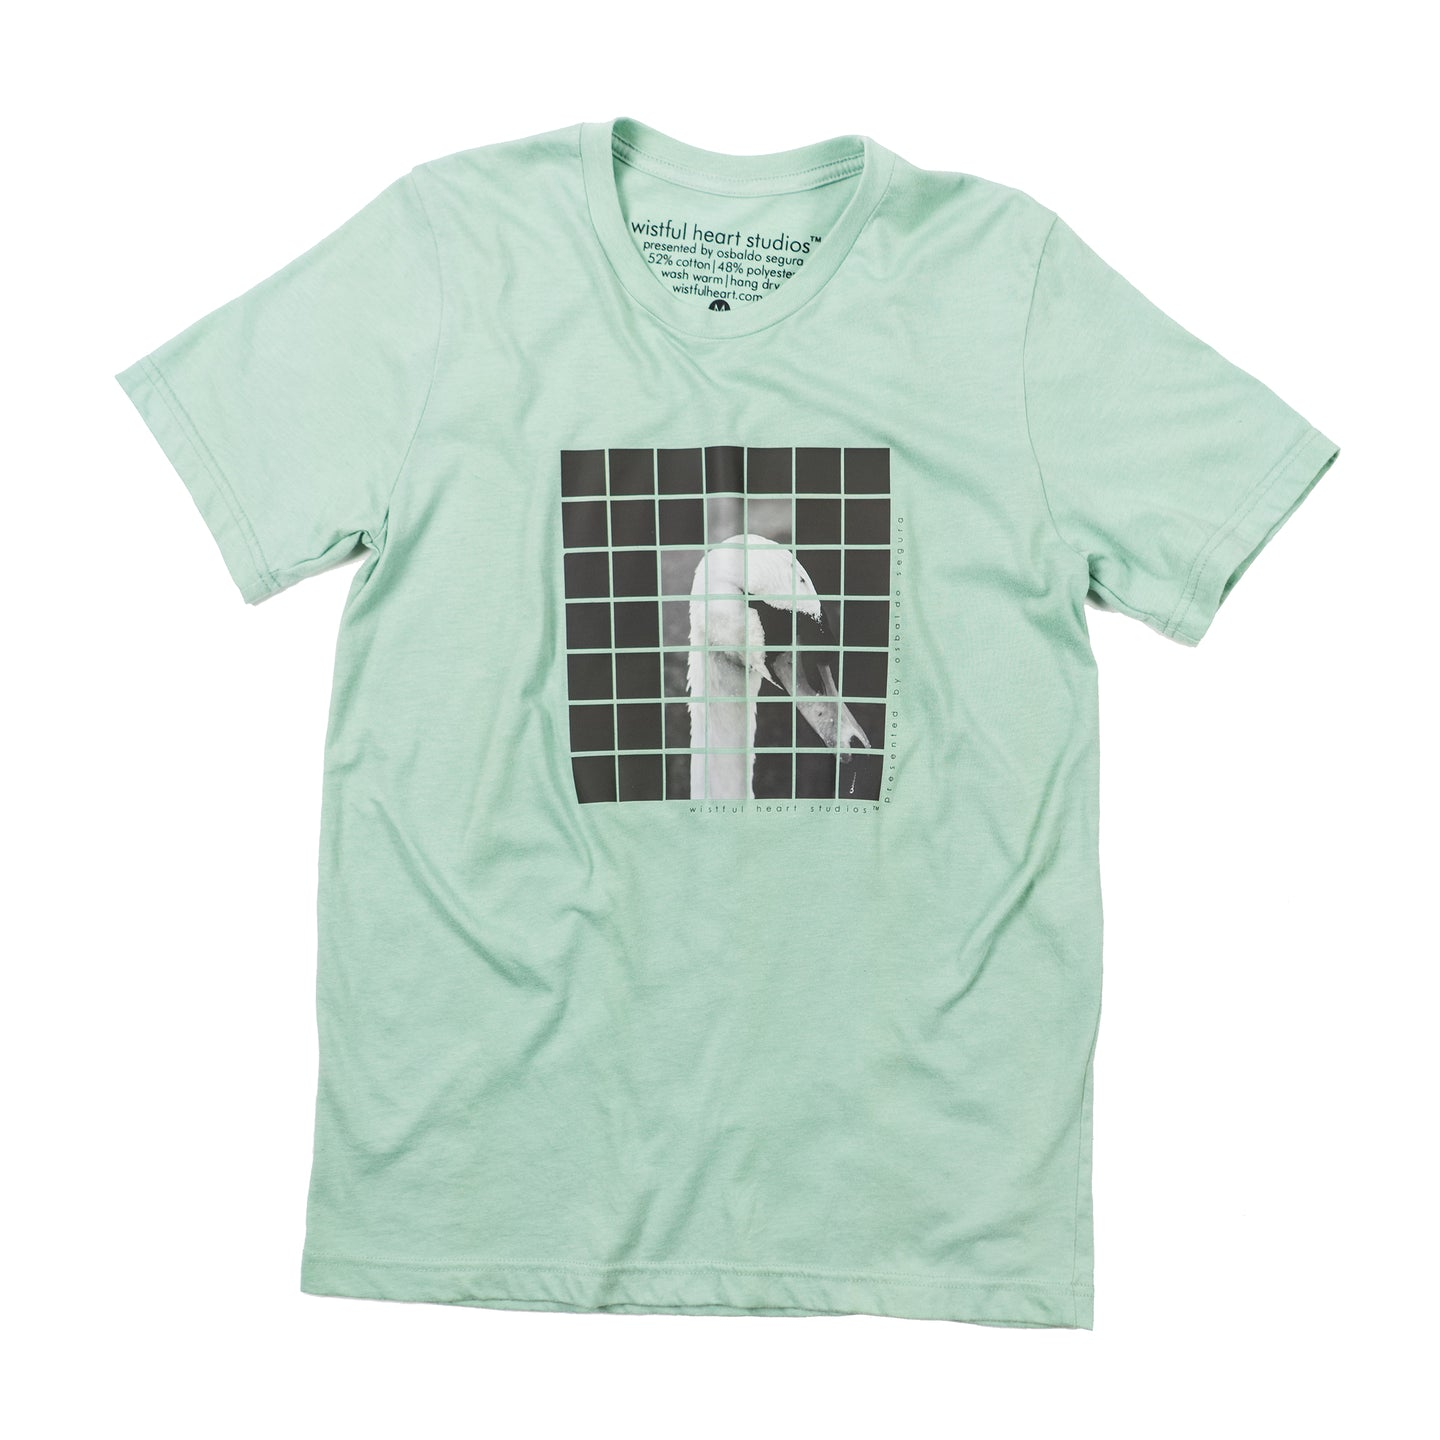 WHS™ FRAGMENTED SWAN T-SHIRT - STONEWASH GREEN